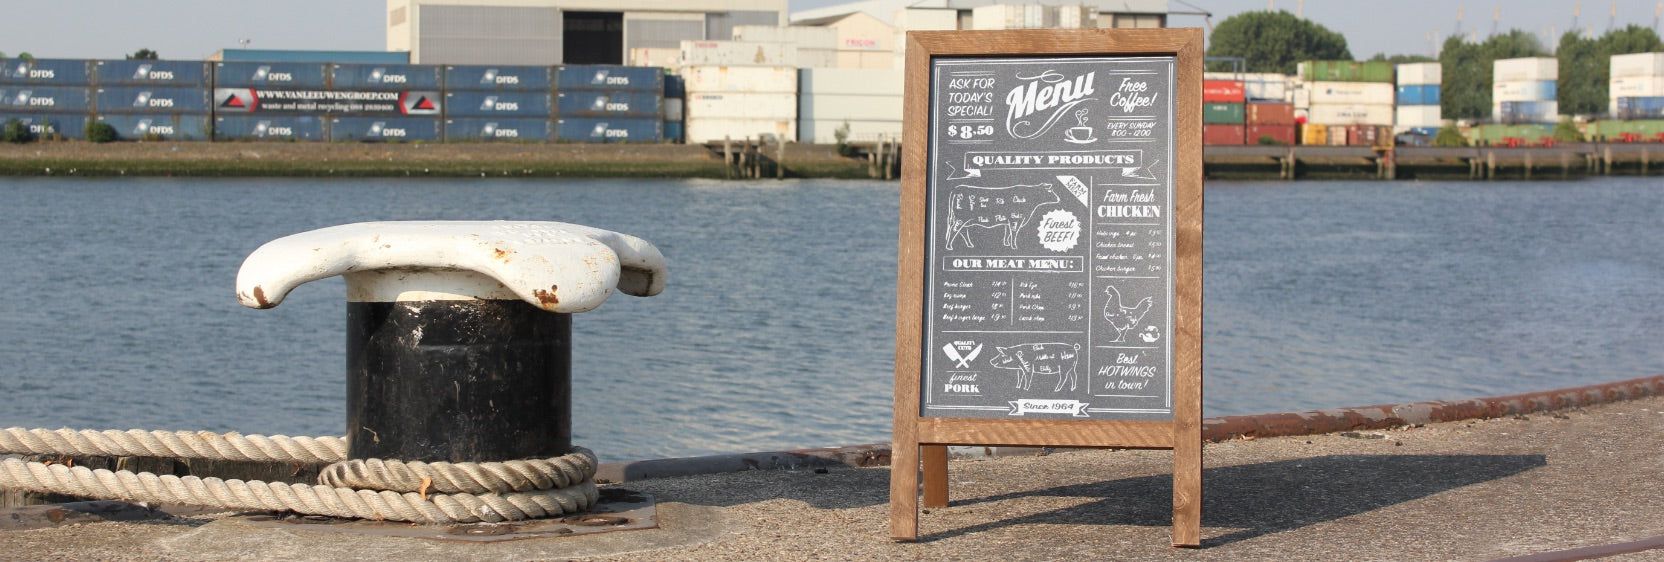 46 x 80cm Pavement Signs at display-sign.co.uk